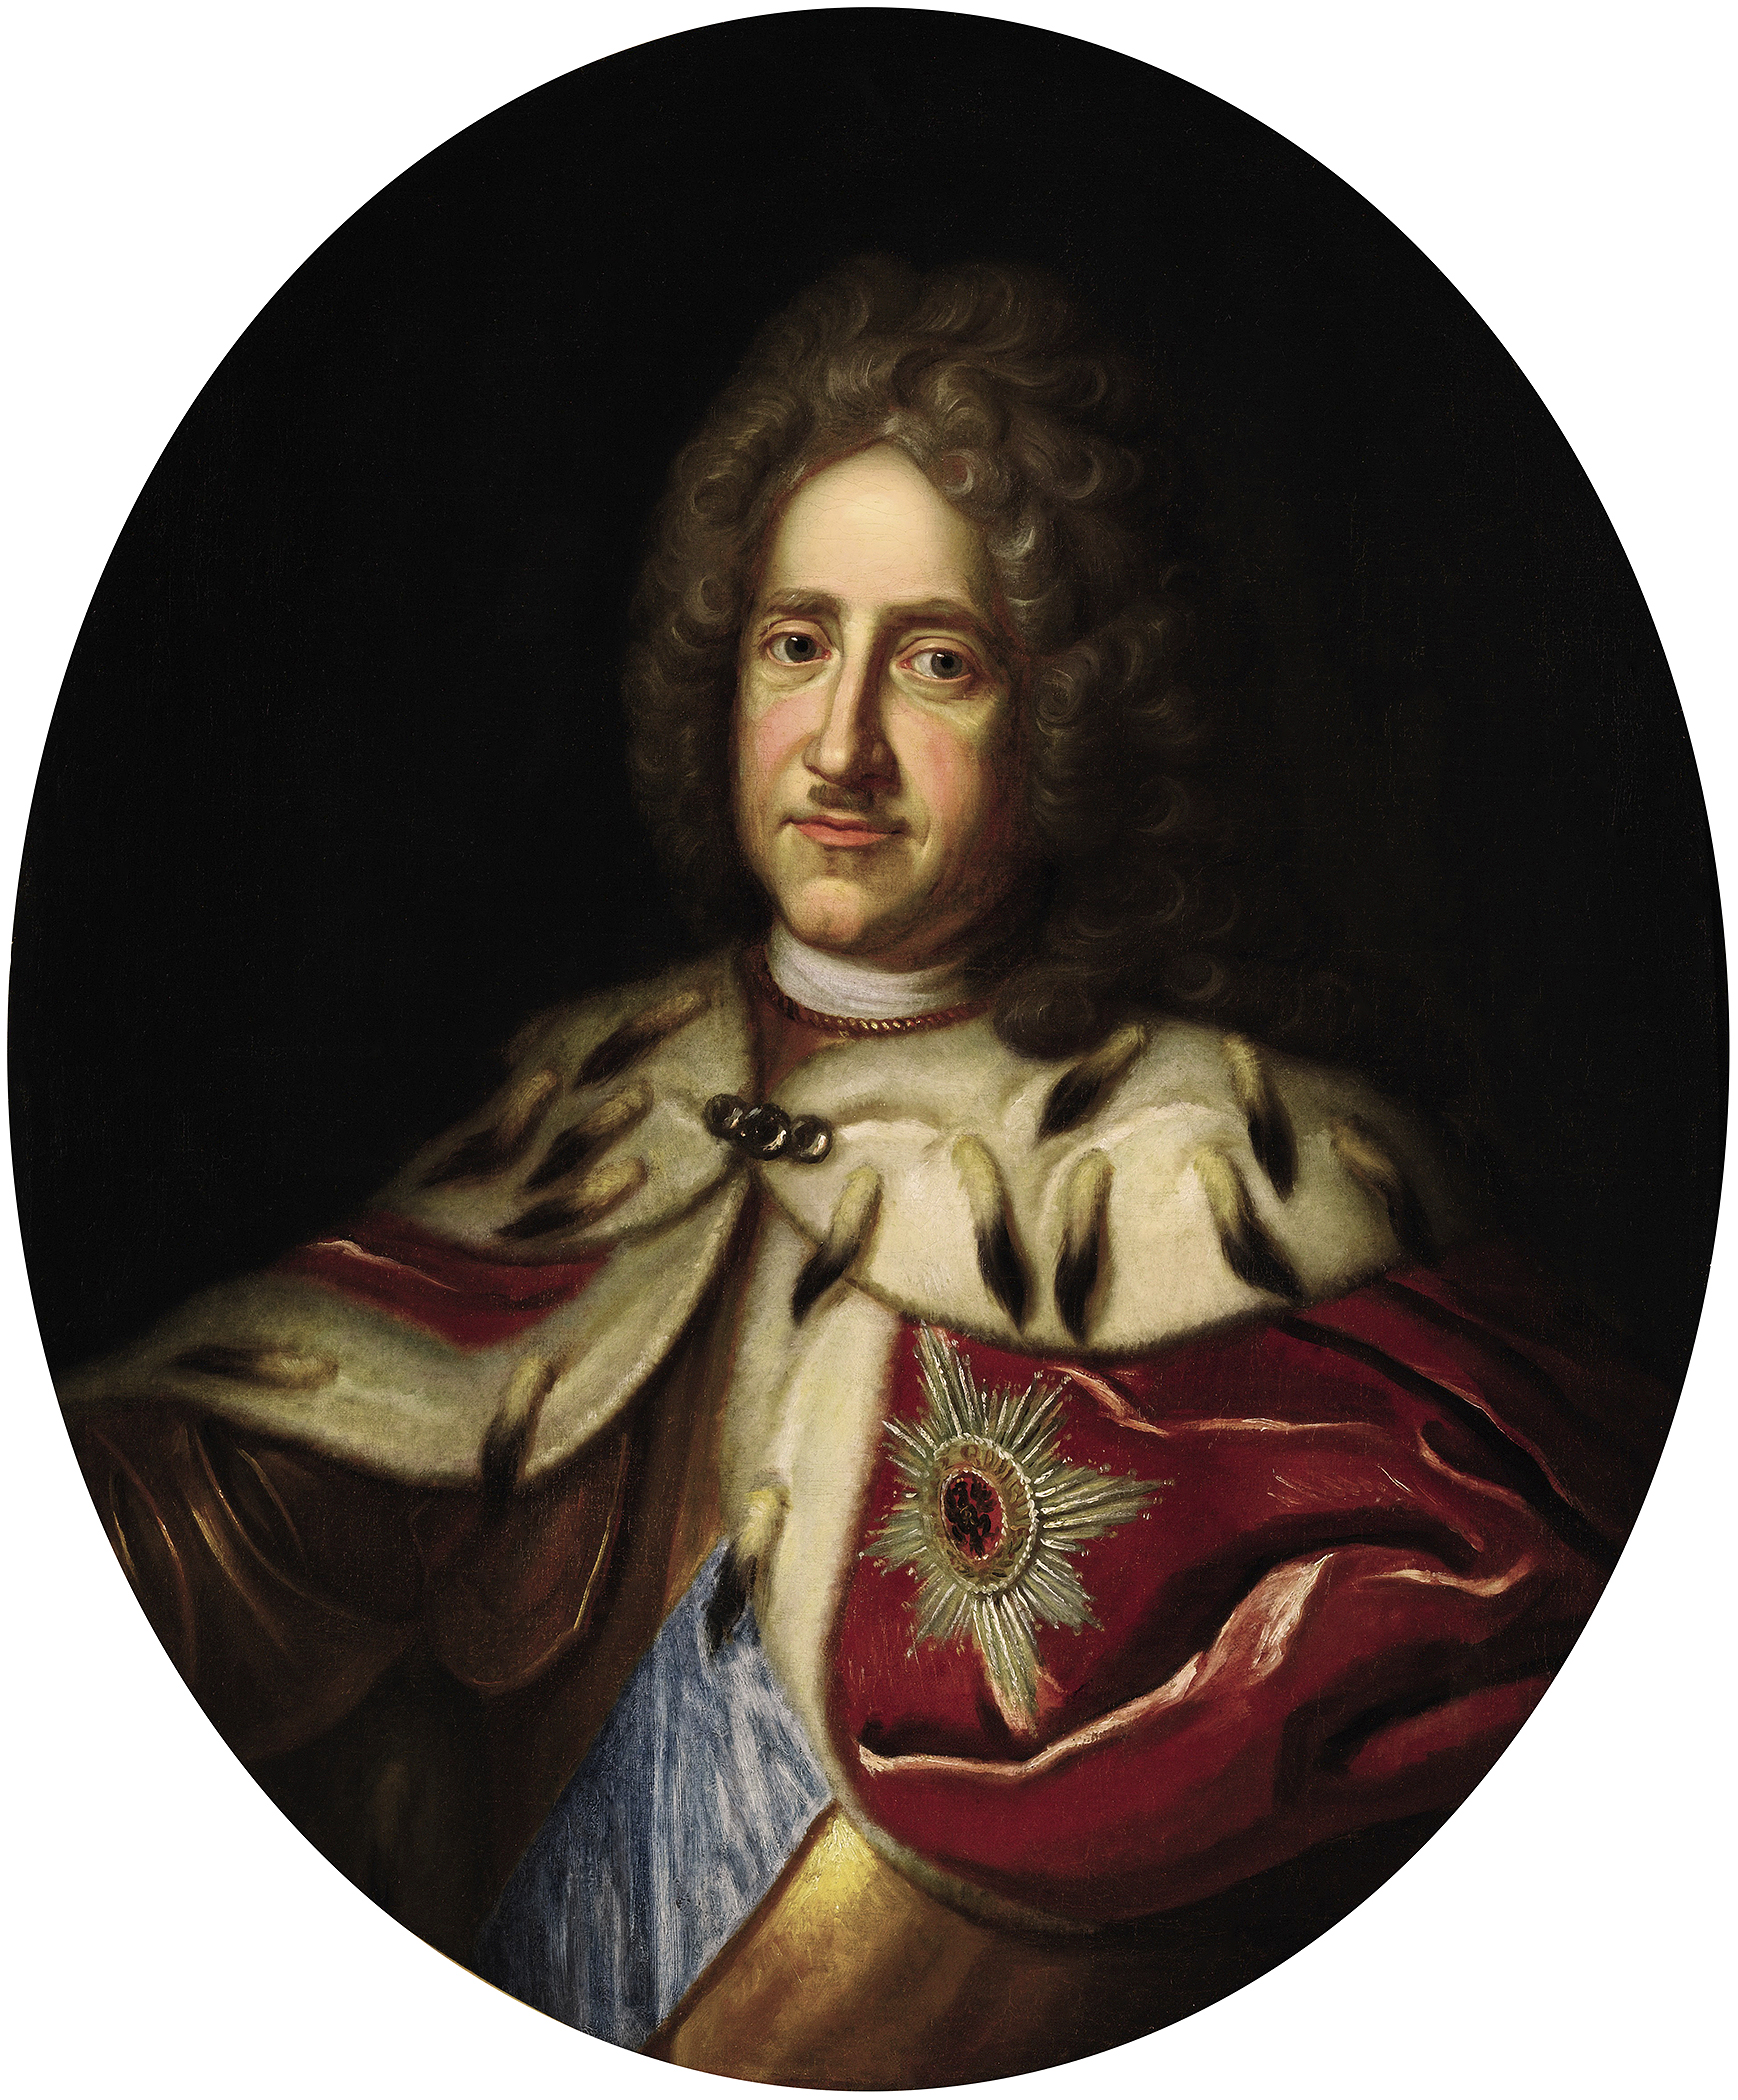 Portrait of Frederick I (1657-1713), King in Prussia (1701-1713), Elector of Brandenburg (as Frederick III) from 1688 to 1713; Duke of Prussia (1688-1701), Prince of Neuchâtel (1707) | Portraits of Kings